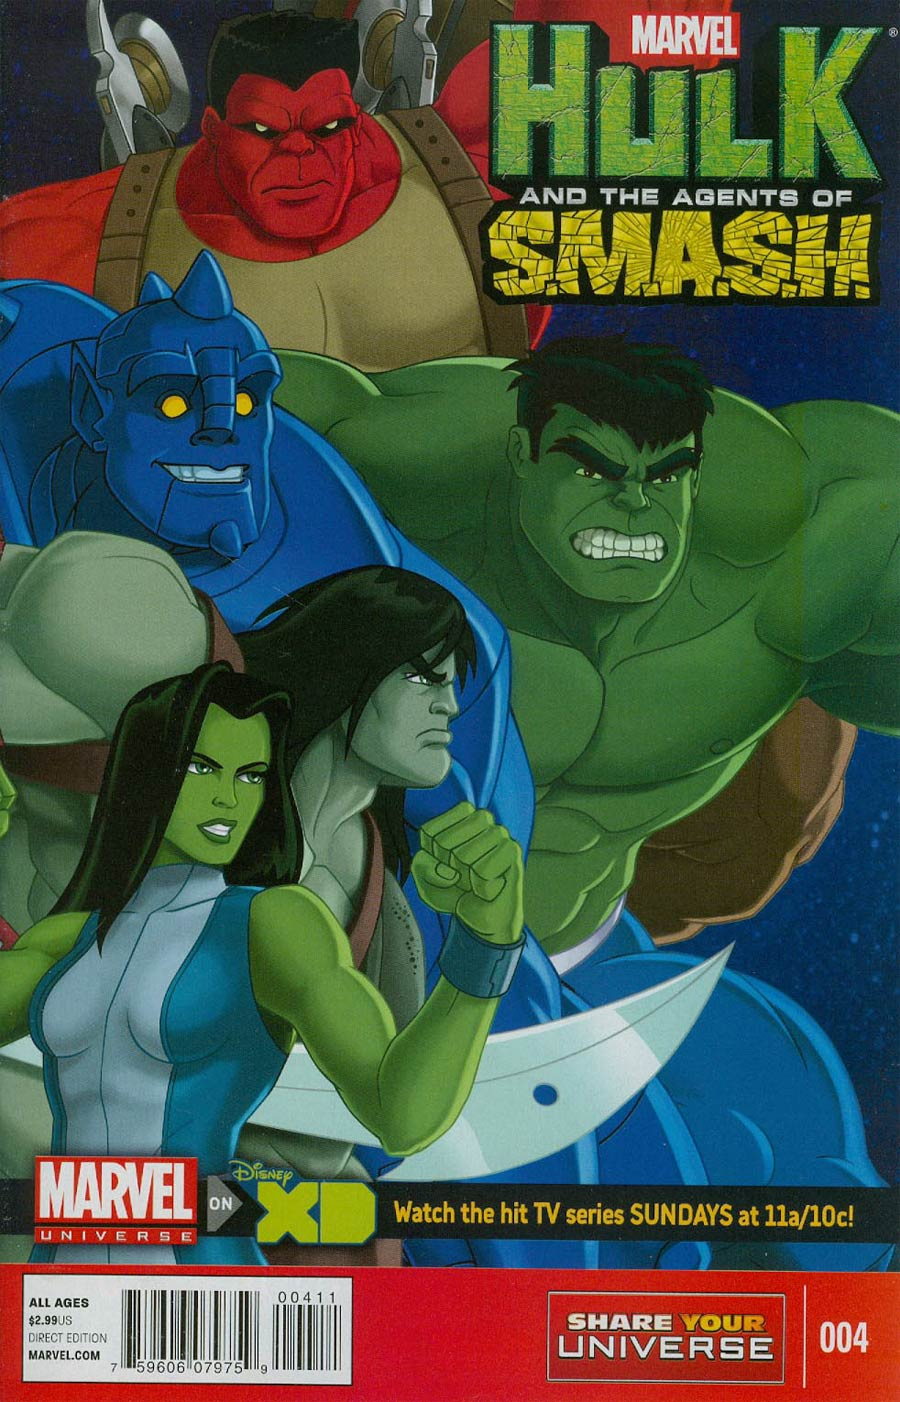 Marvel Universe Hulk And The Agents Of S.M.A.S.H. #4